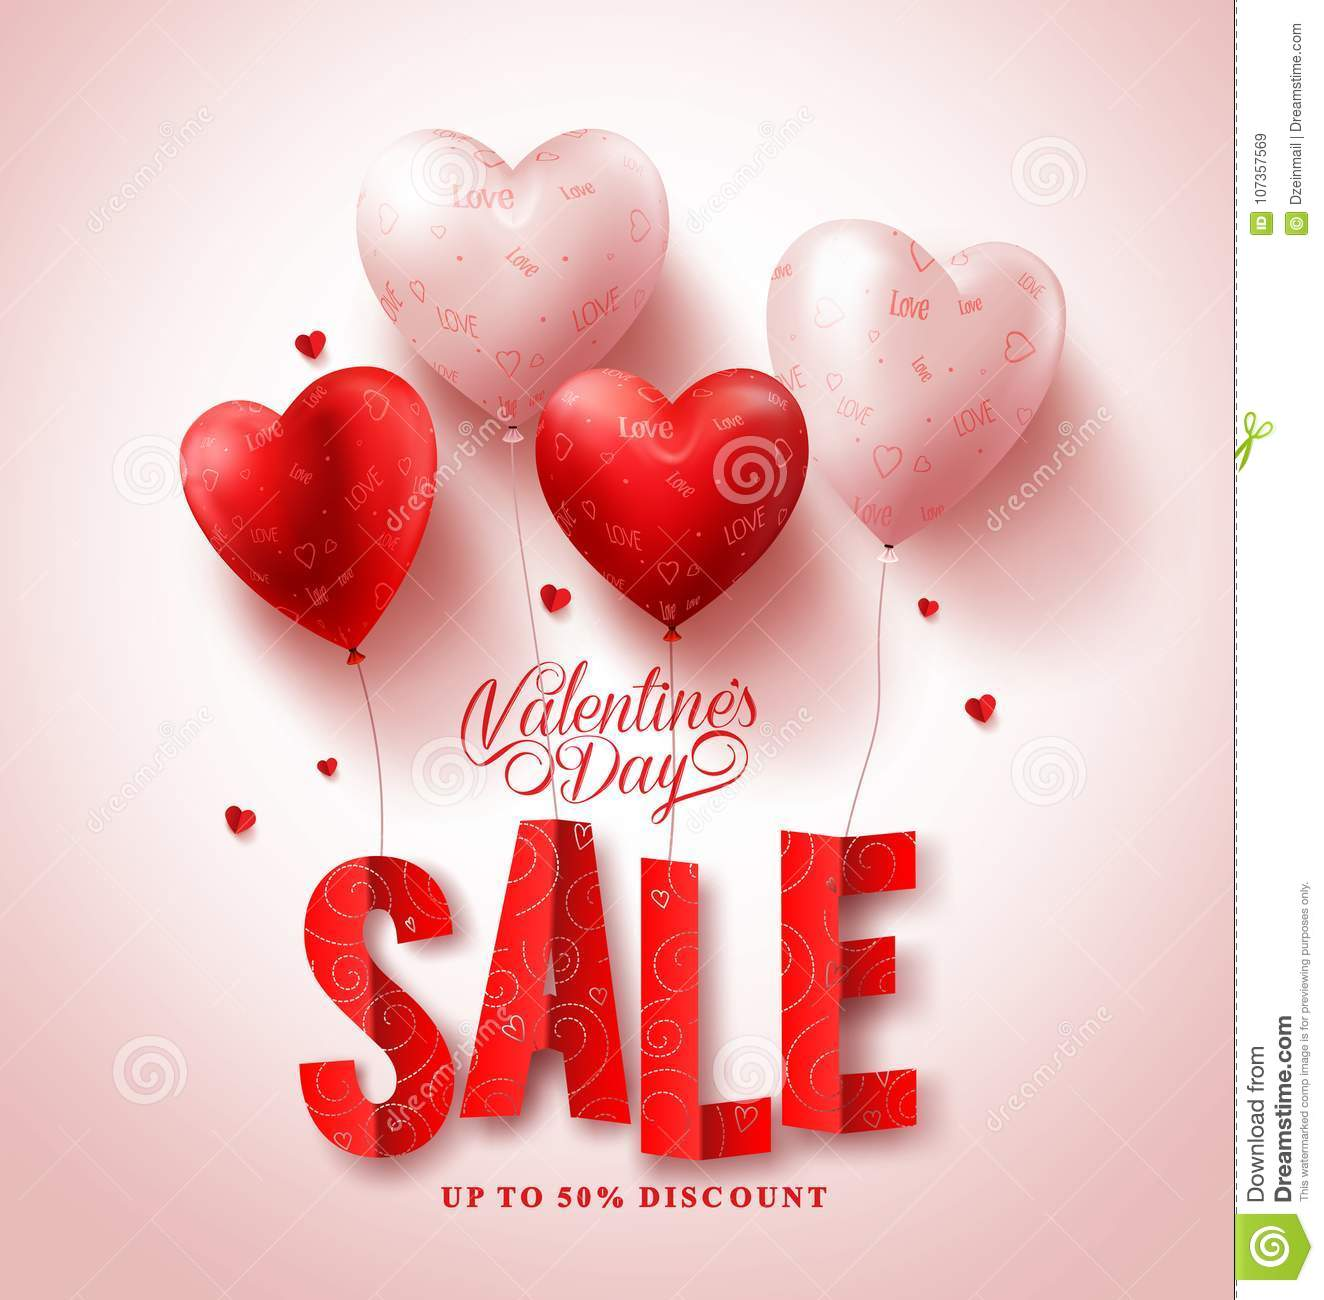 Valentines day sale vector design with red heart shape balloons in white background